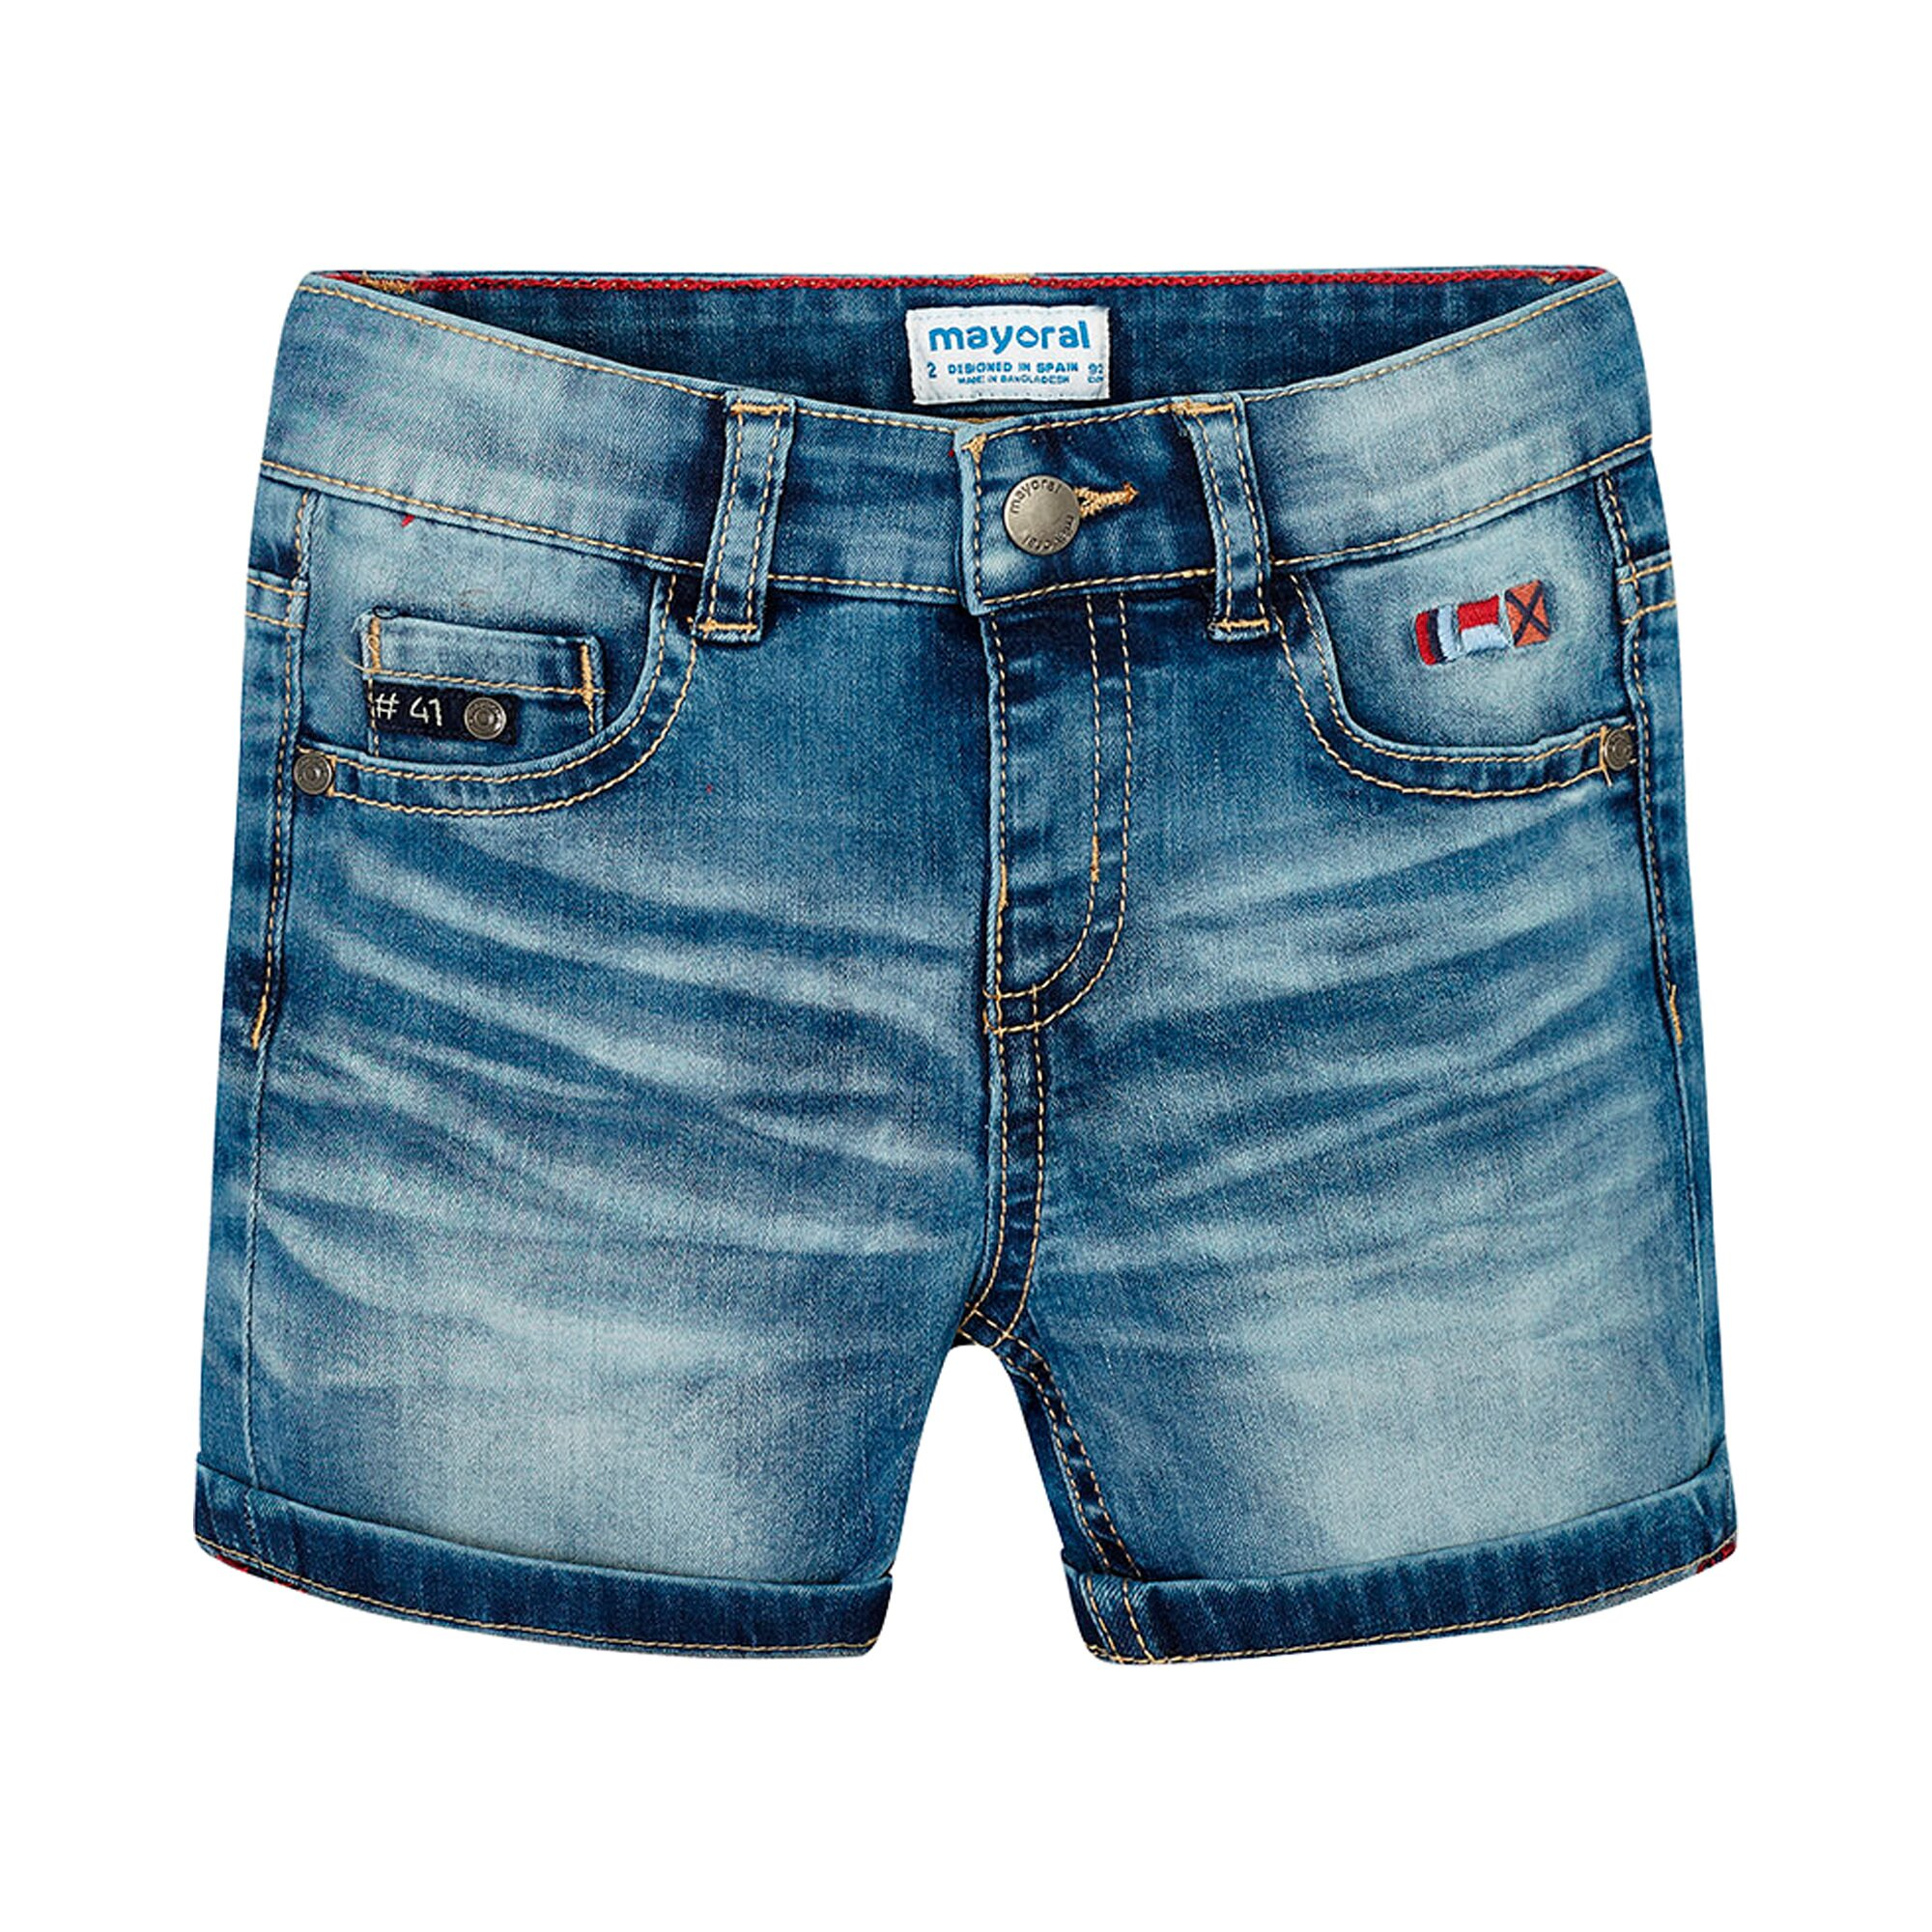 Mayoral Jeans-Bermuda 5 Pocket